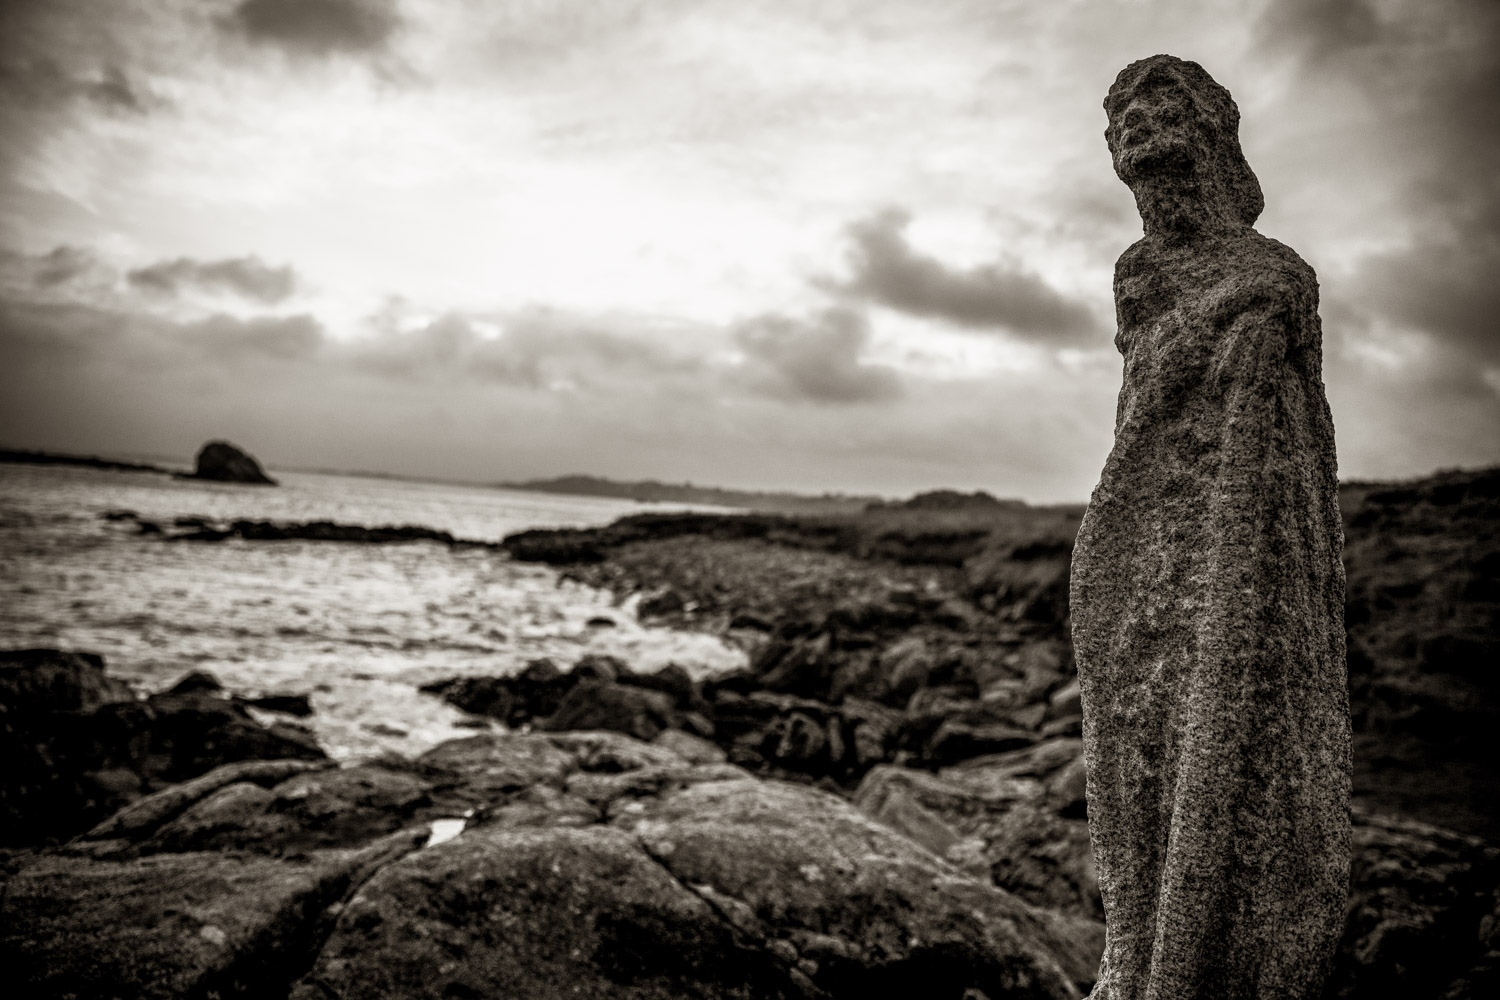 FEATURED AS A WOMAN, SAINT-TARIEC STATUE WAS ERECTED BY FAÑCH BRETON TO PROTECT THE CALVARY FROM THE SEA